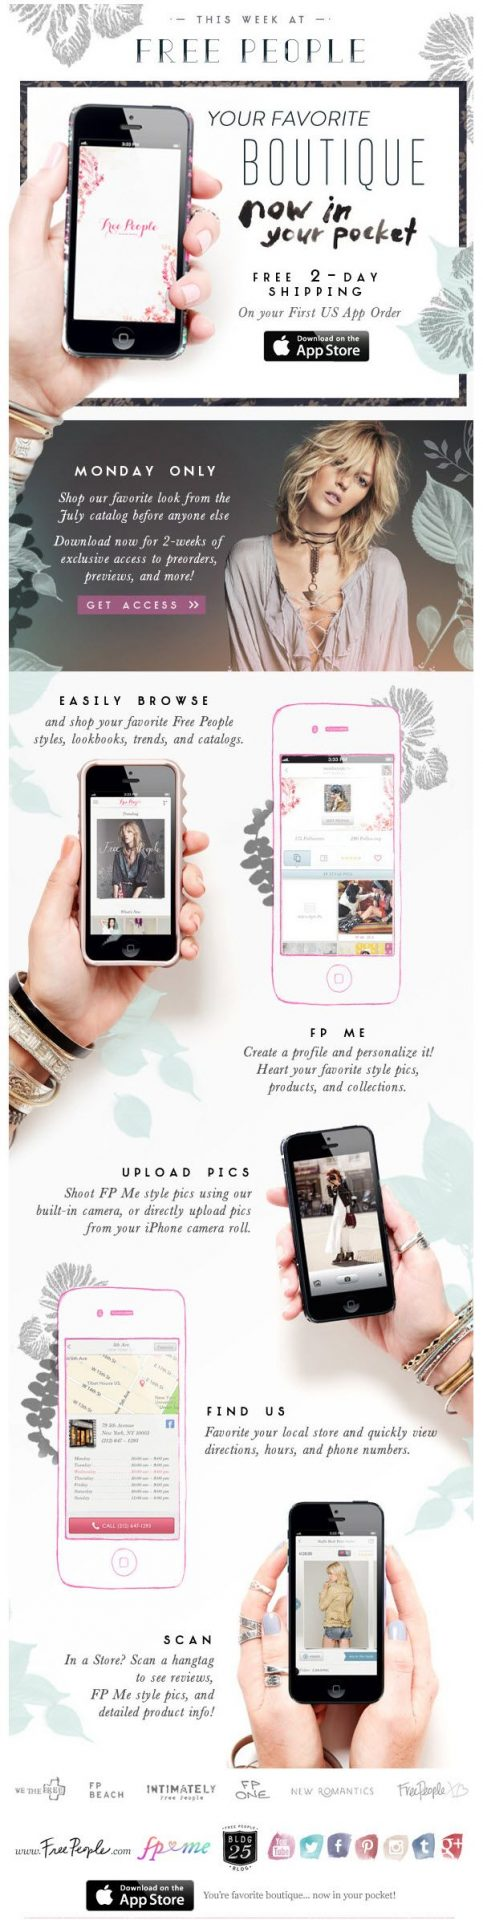 22 Excellent eCommerce Email Templates Examples to Inspire Your Next ...